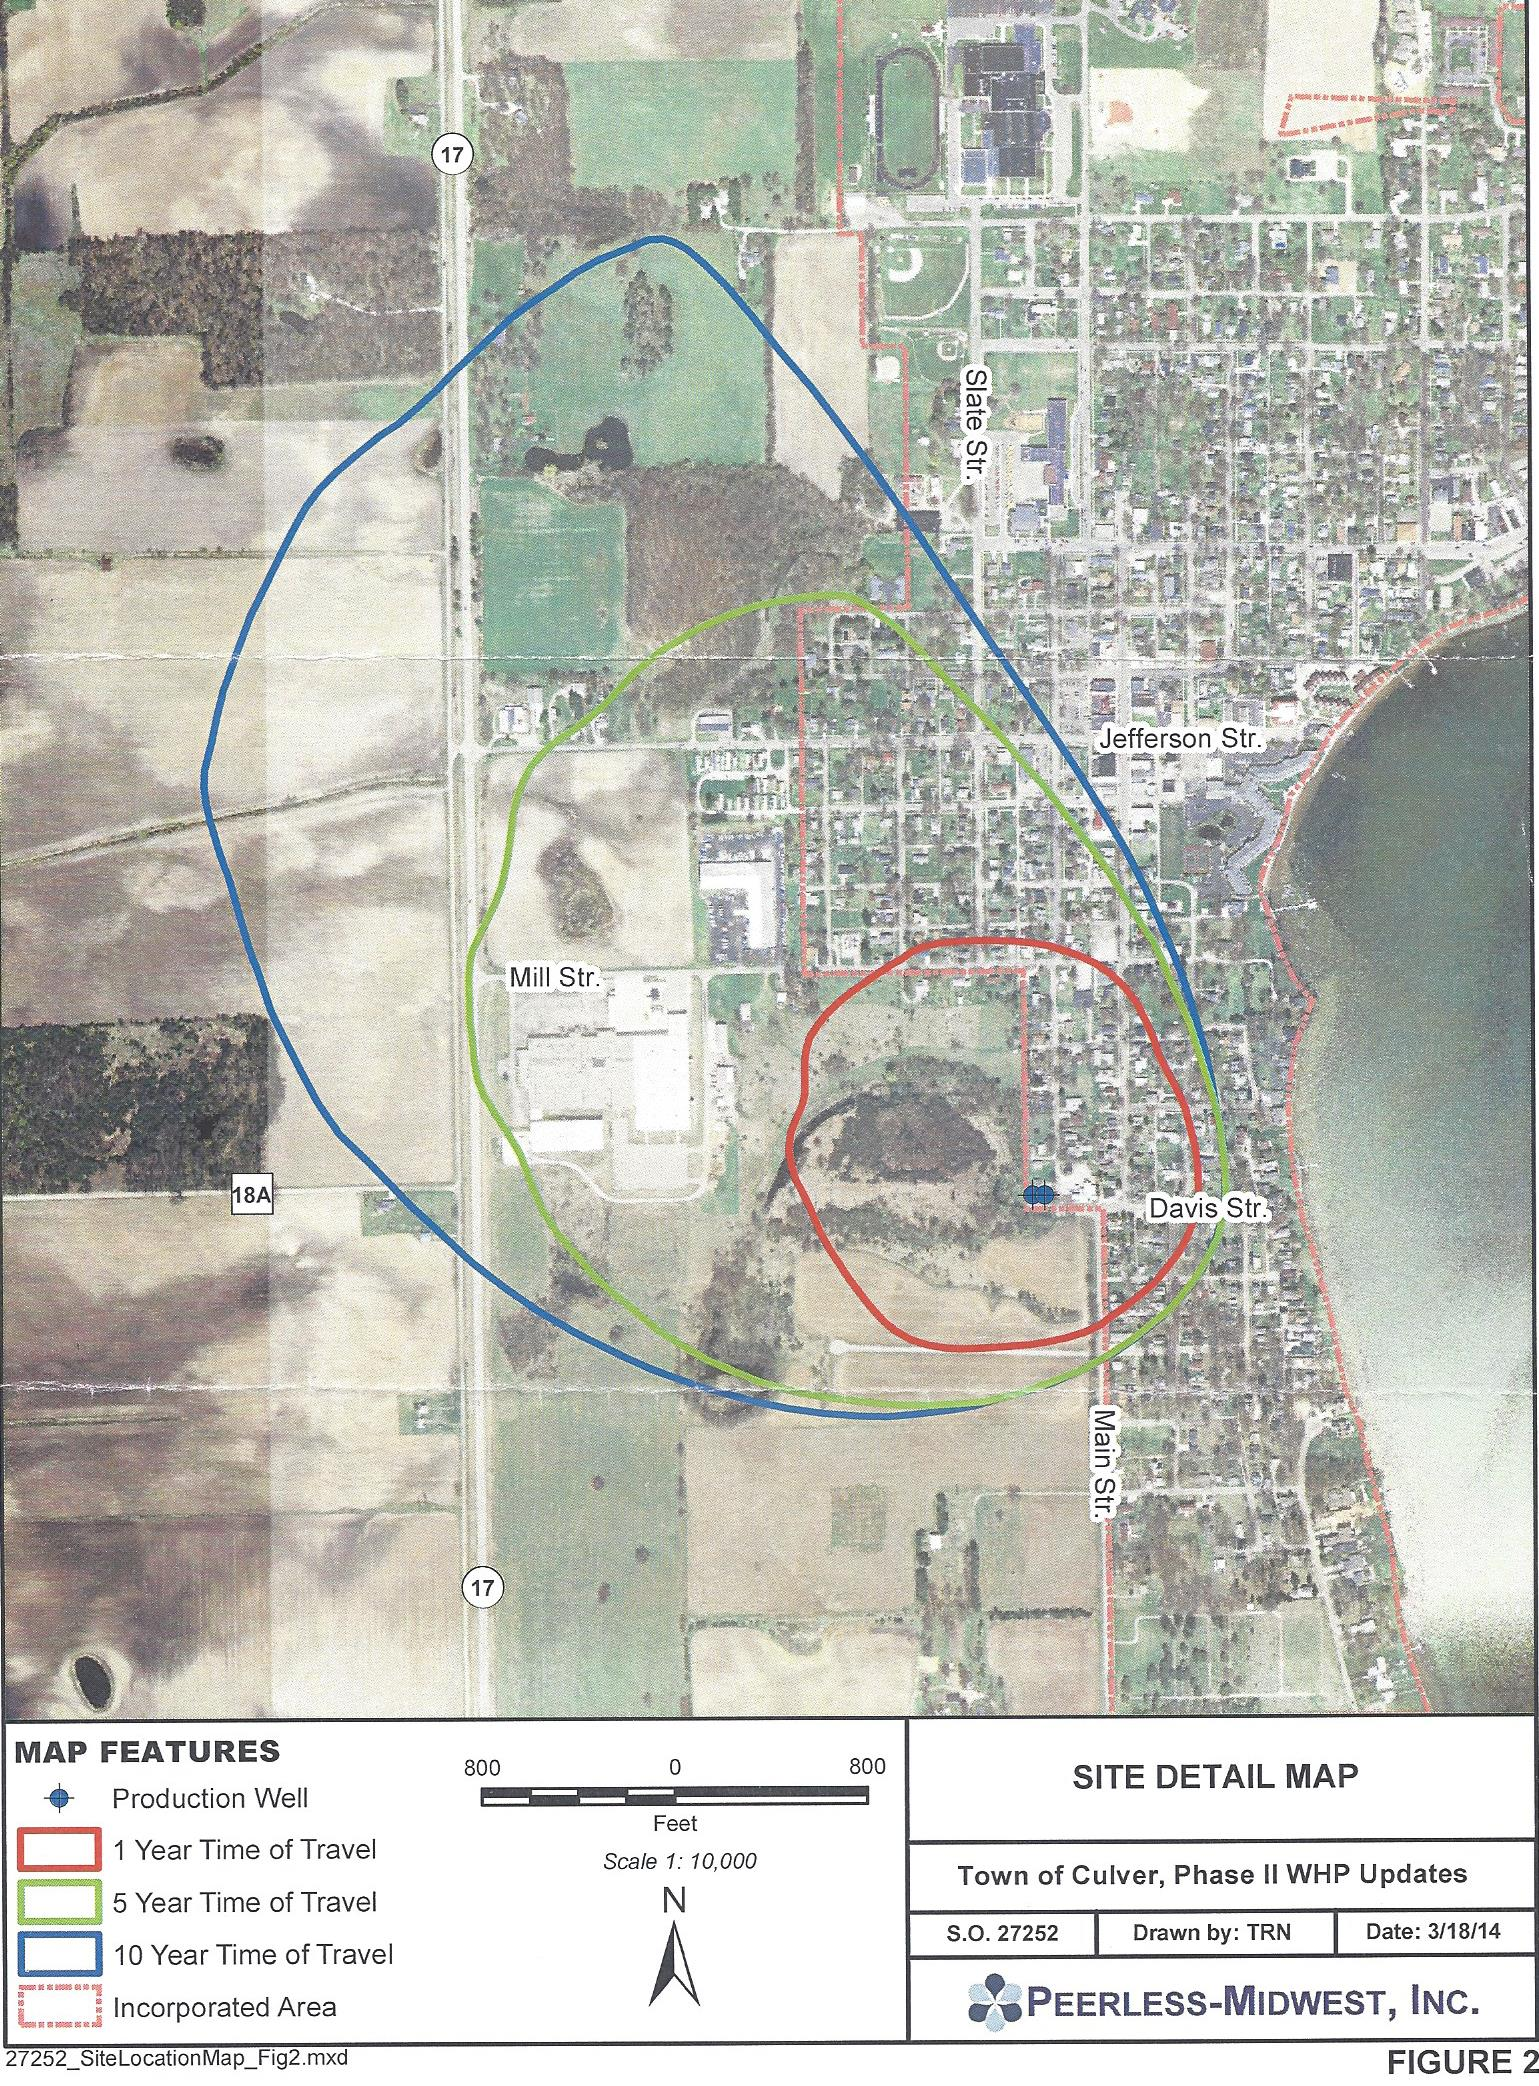 Map of Town of Culver wellhead drainage aquifer area